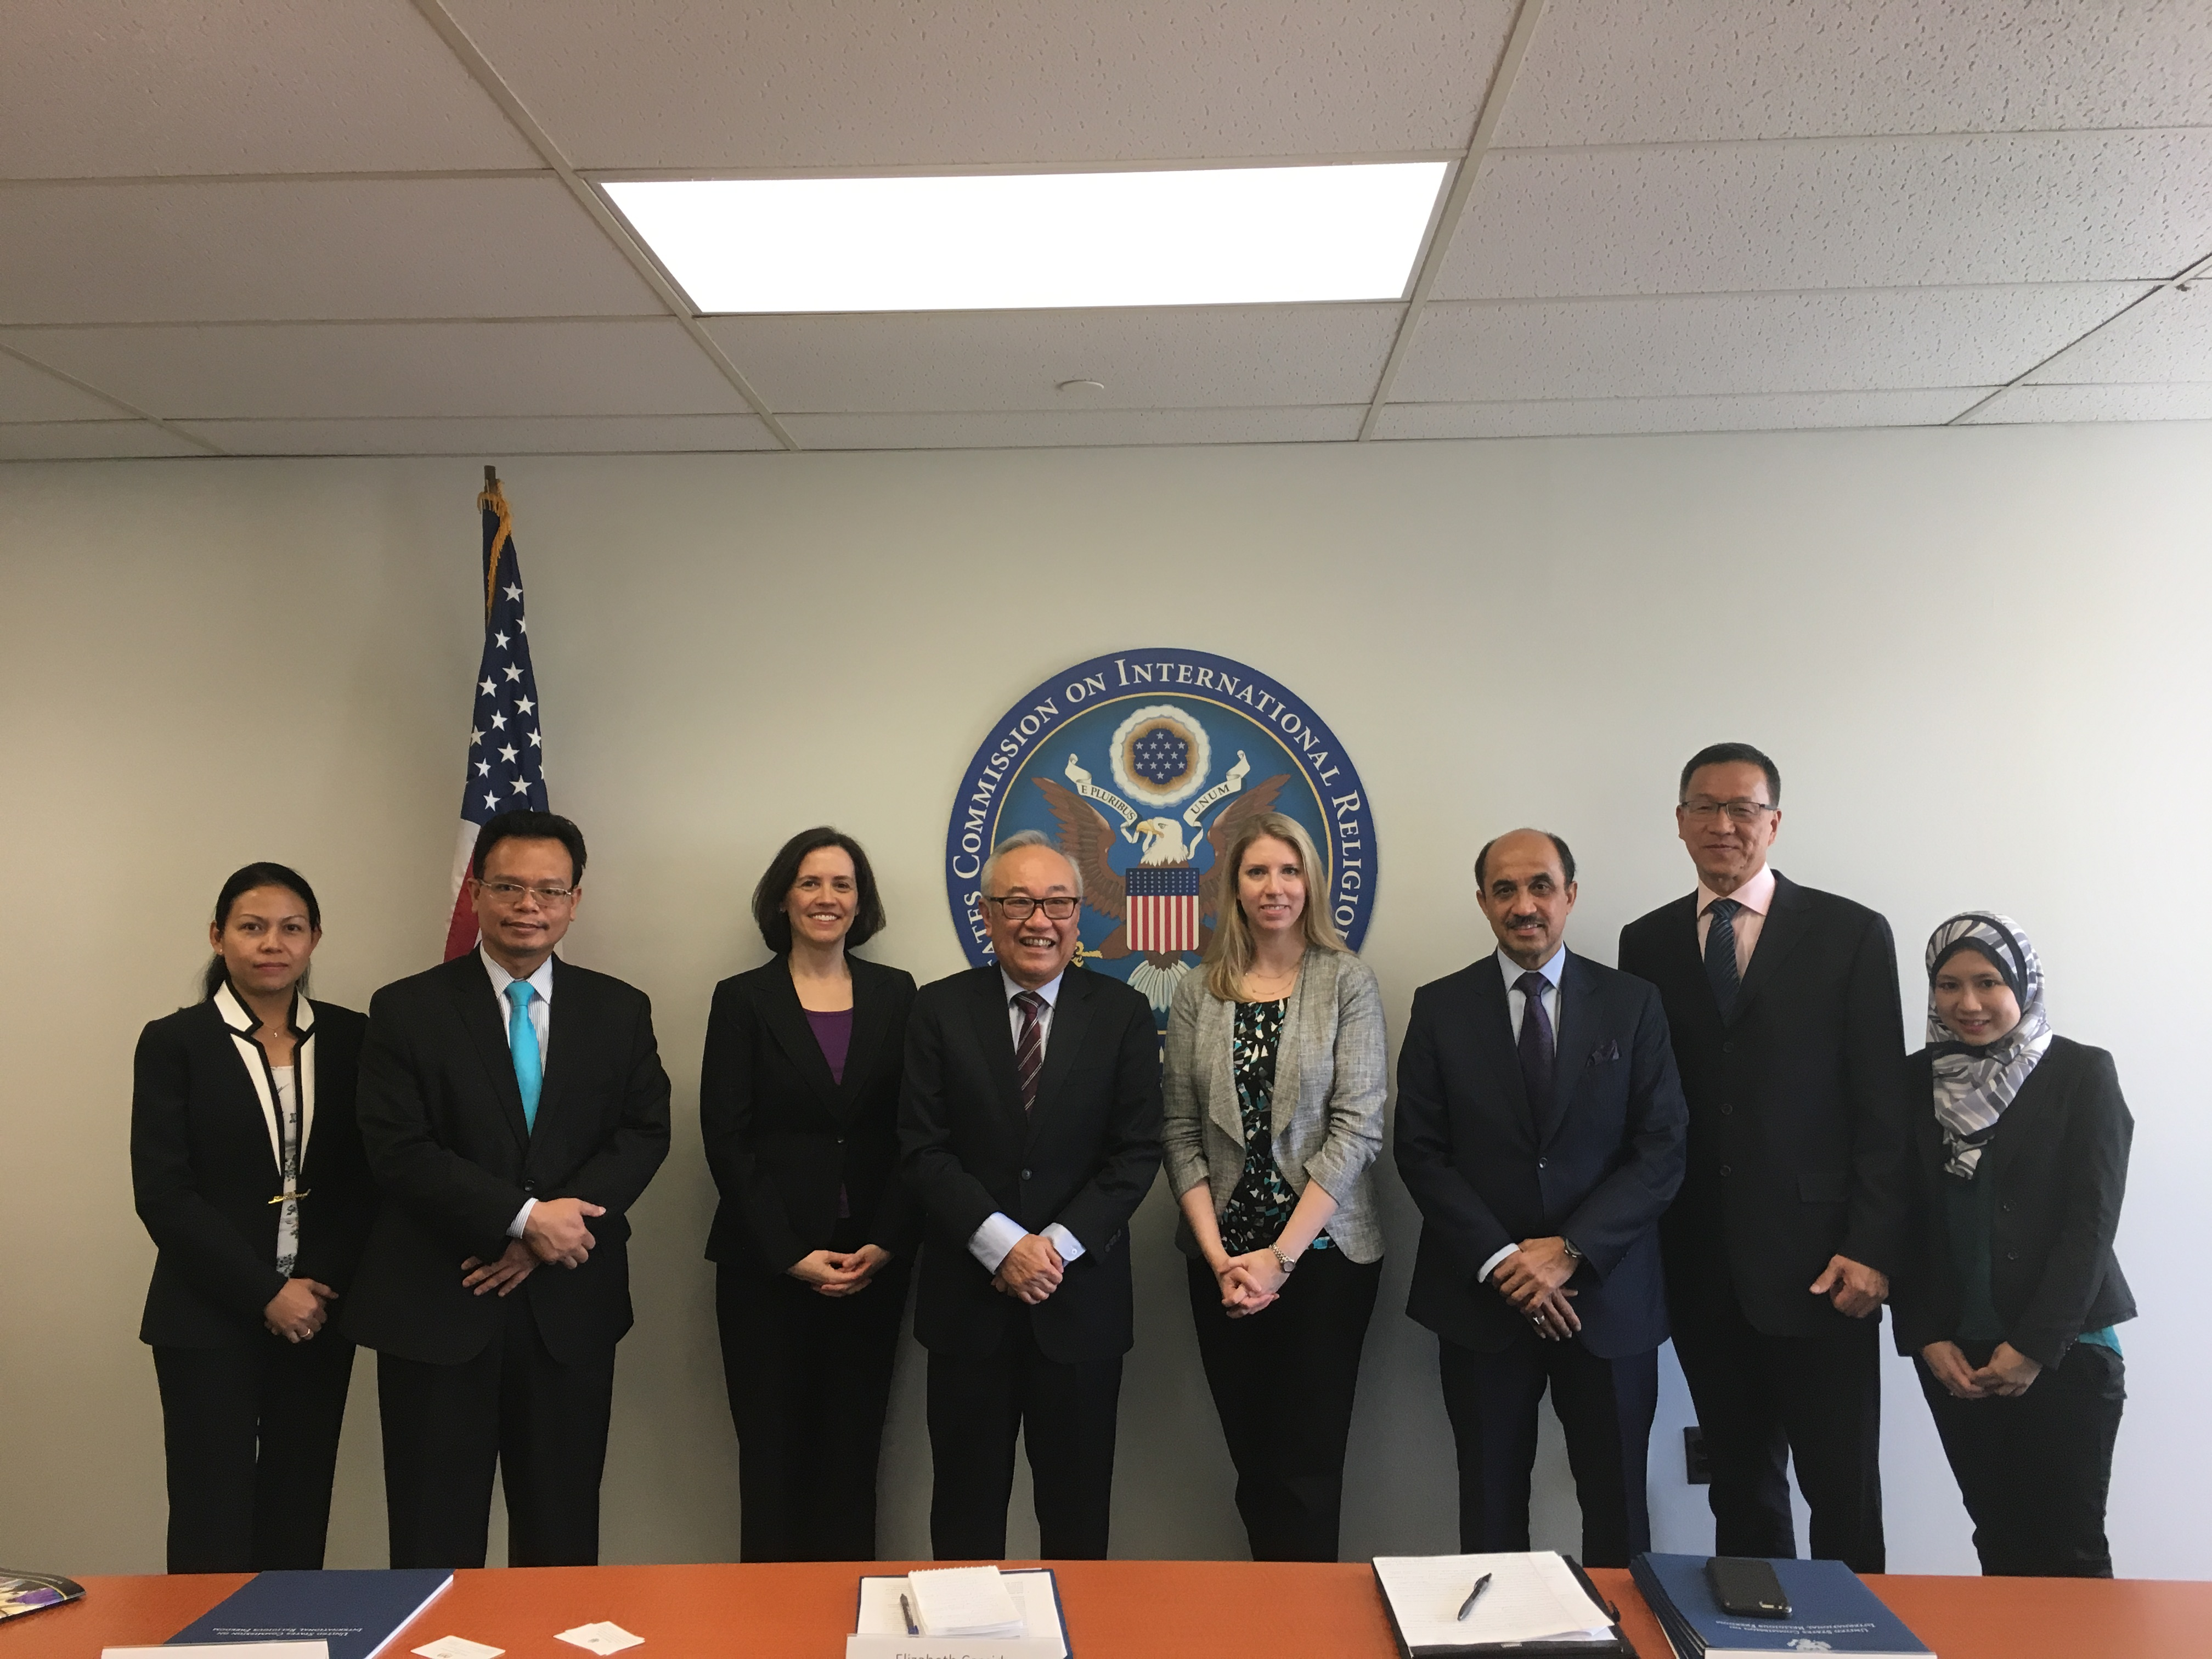 On October 2, USCIRF's Elizabeth Cassidy, Director of International Law and Policy, and Tina Mufford, Senior Policy Analyst, met with Malaysian Senator Datuk Paul Low (4th from L), Ambassador Tan Sri Zulhasnan Rafique (3rd from R), and other Malaysian officials. Read USCIRF's annual report chapter about Malaysia here.